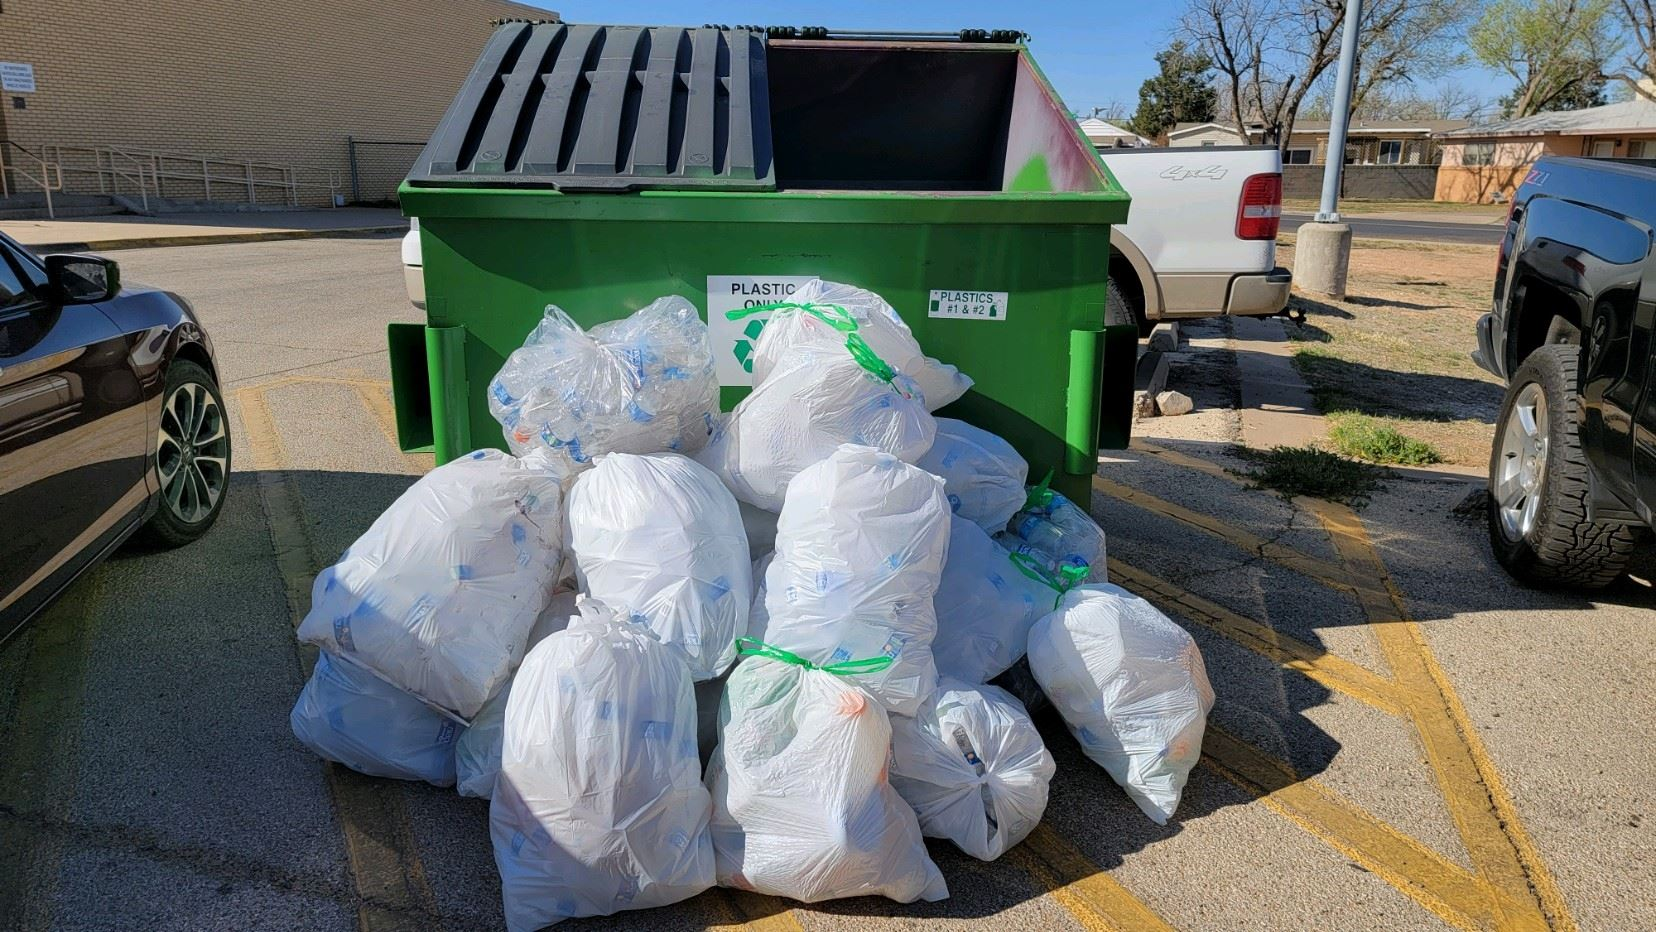 Recycling bin with bags